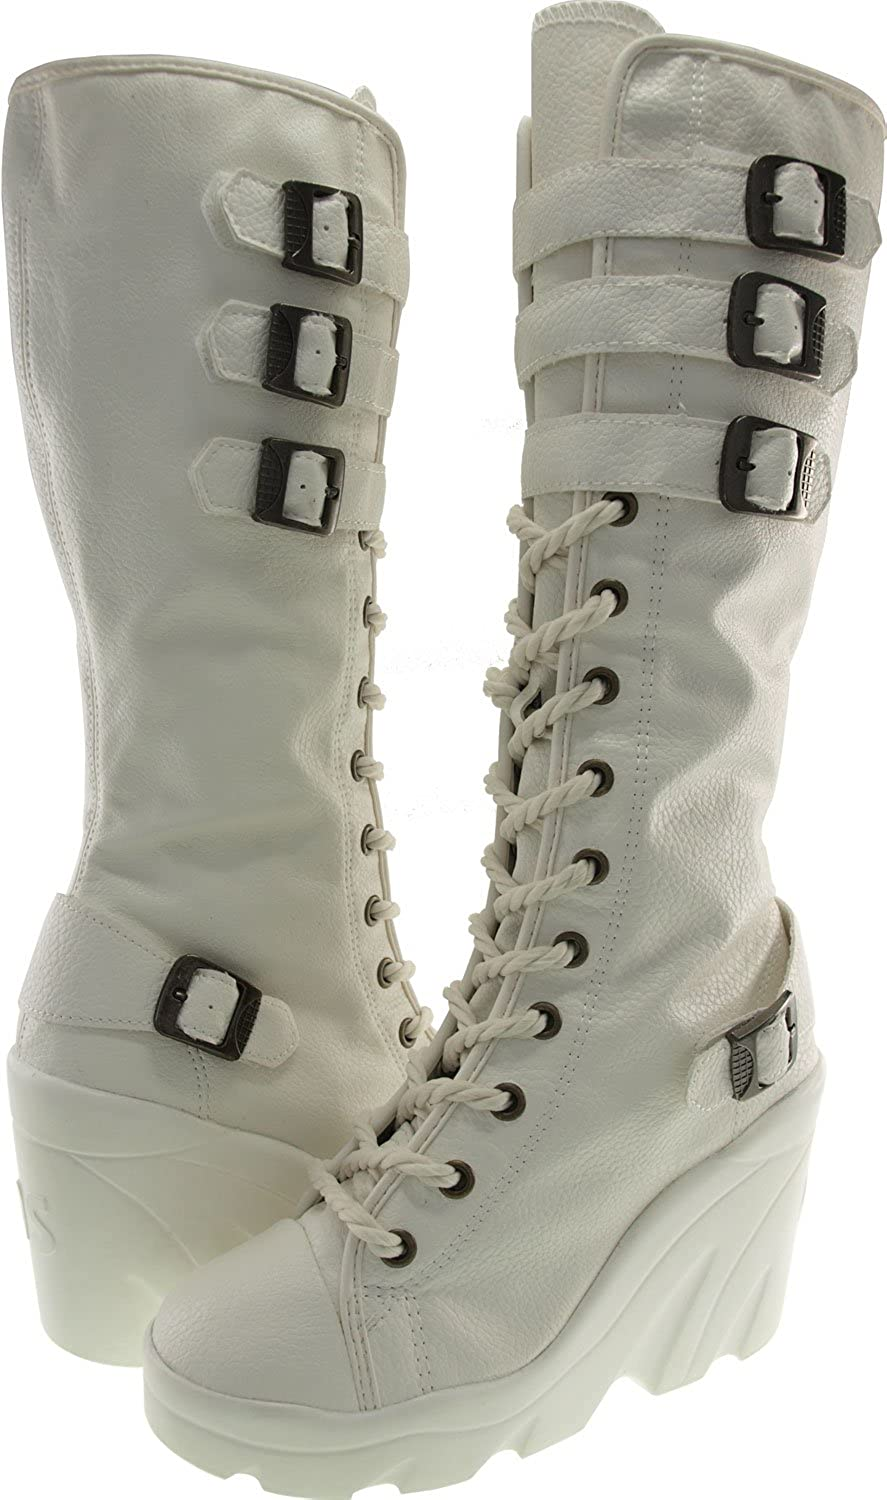 Maxstar 4 Belt Synthetic Leather Wedge Heel Knee Height Boots